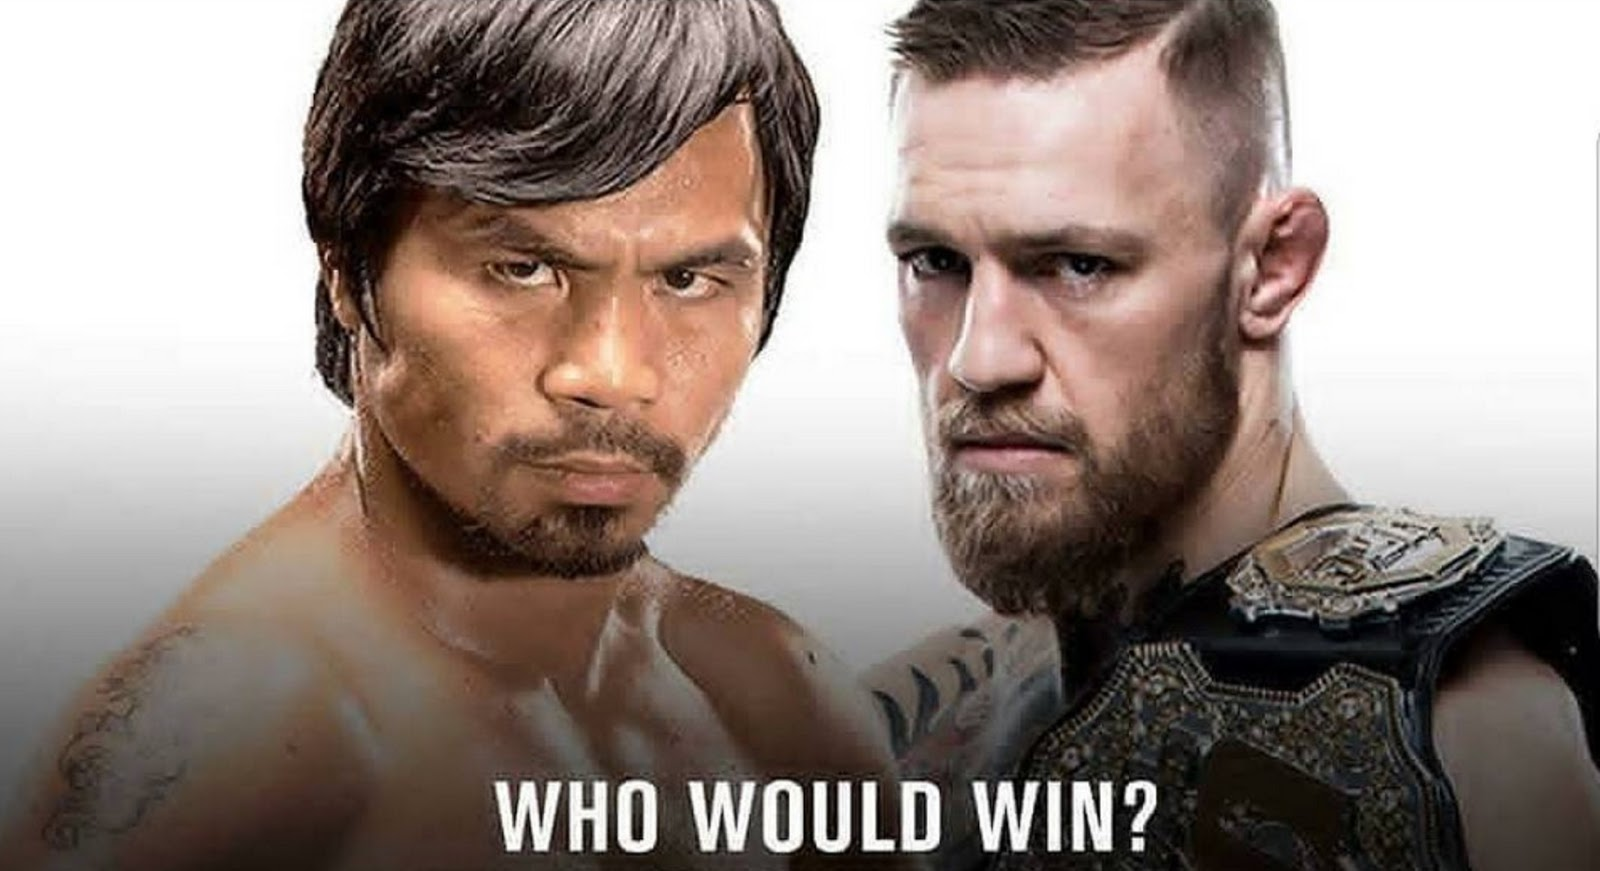 CONOR MCGREGOR VS MANNY PACQUIAO 5